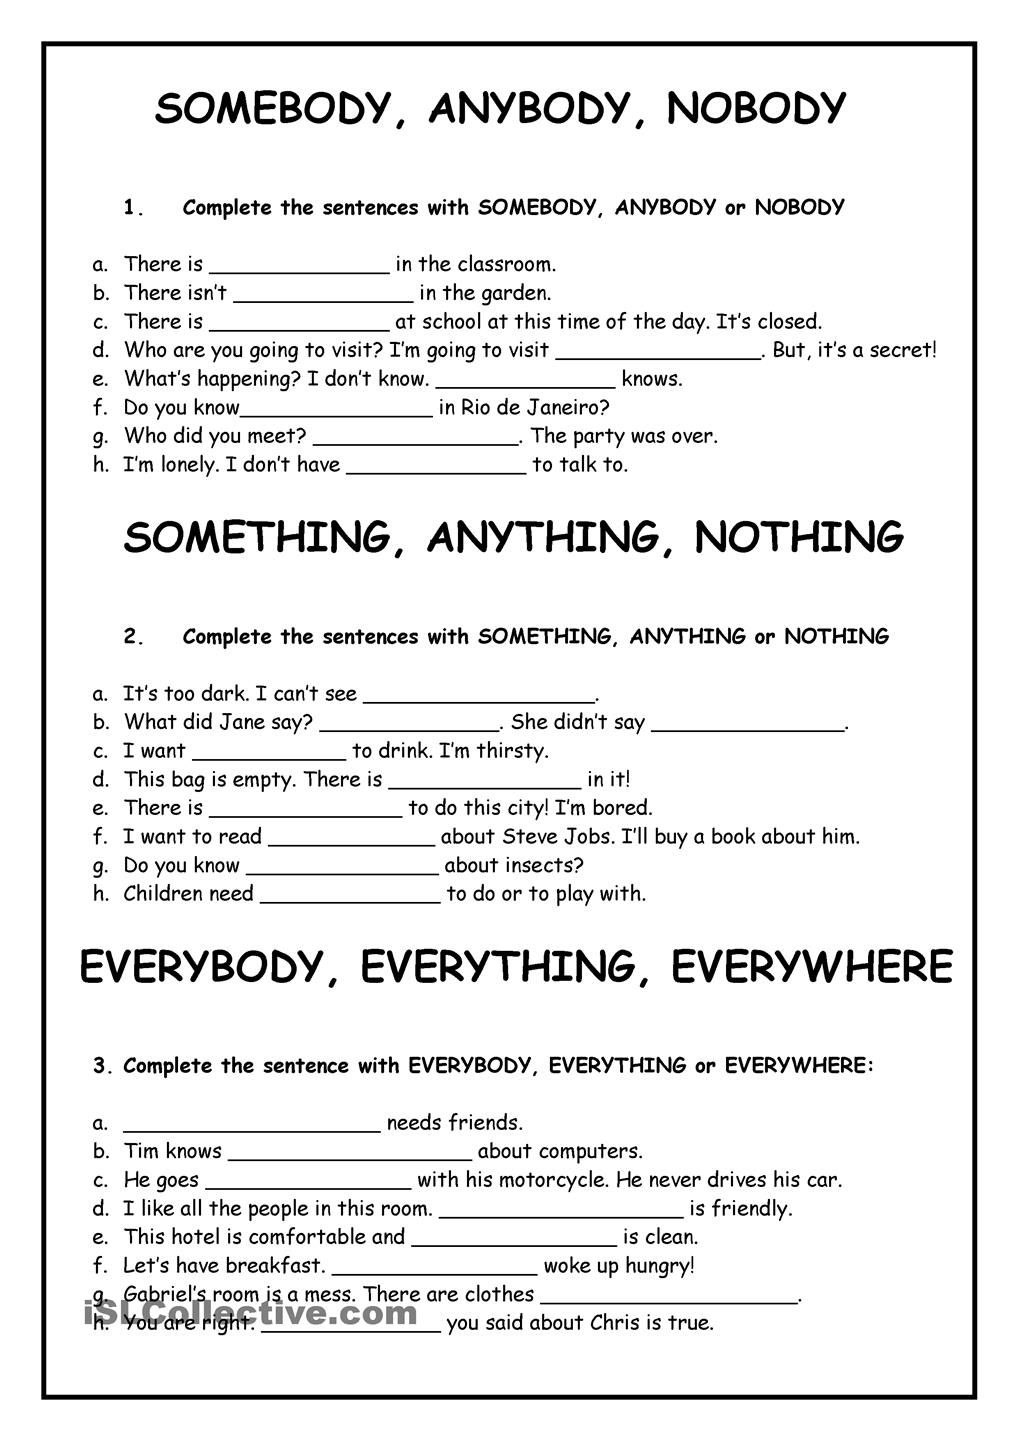 Worksheet Indefinite Pronouns English best ideas about indefinite pronouns worksheets esl and exercises to reinforce grammar with these wordspronouns fully editable page 2 has the answers enjoy it was first published by